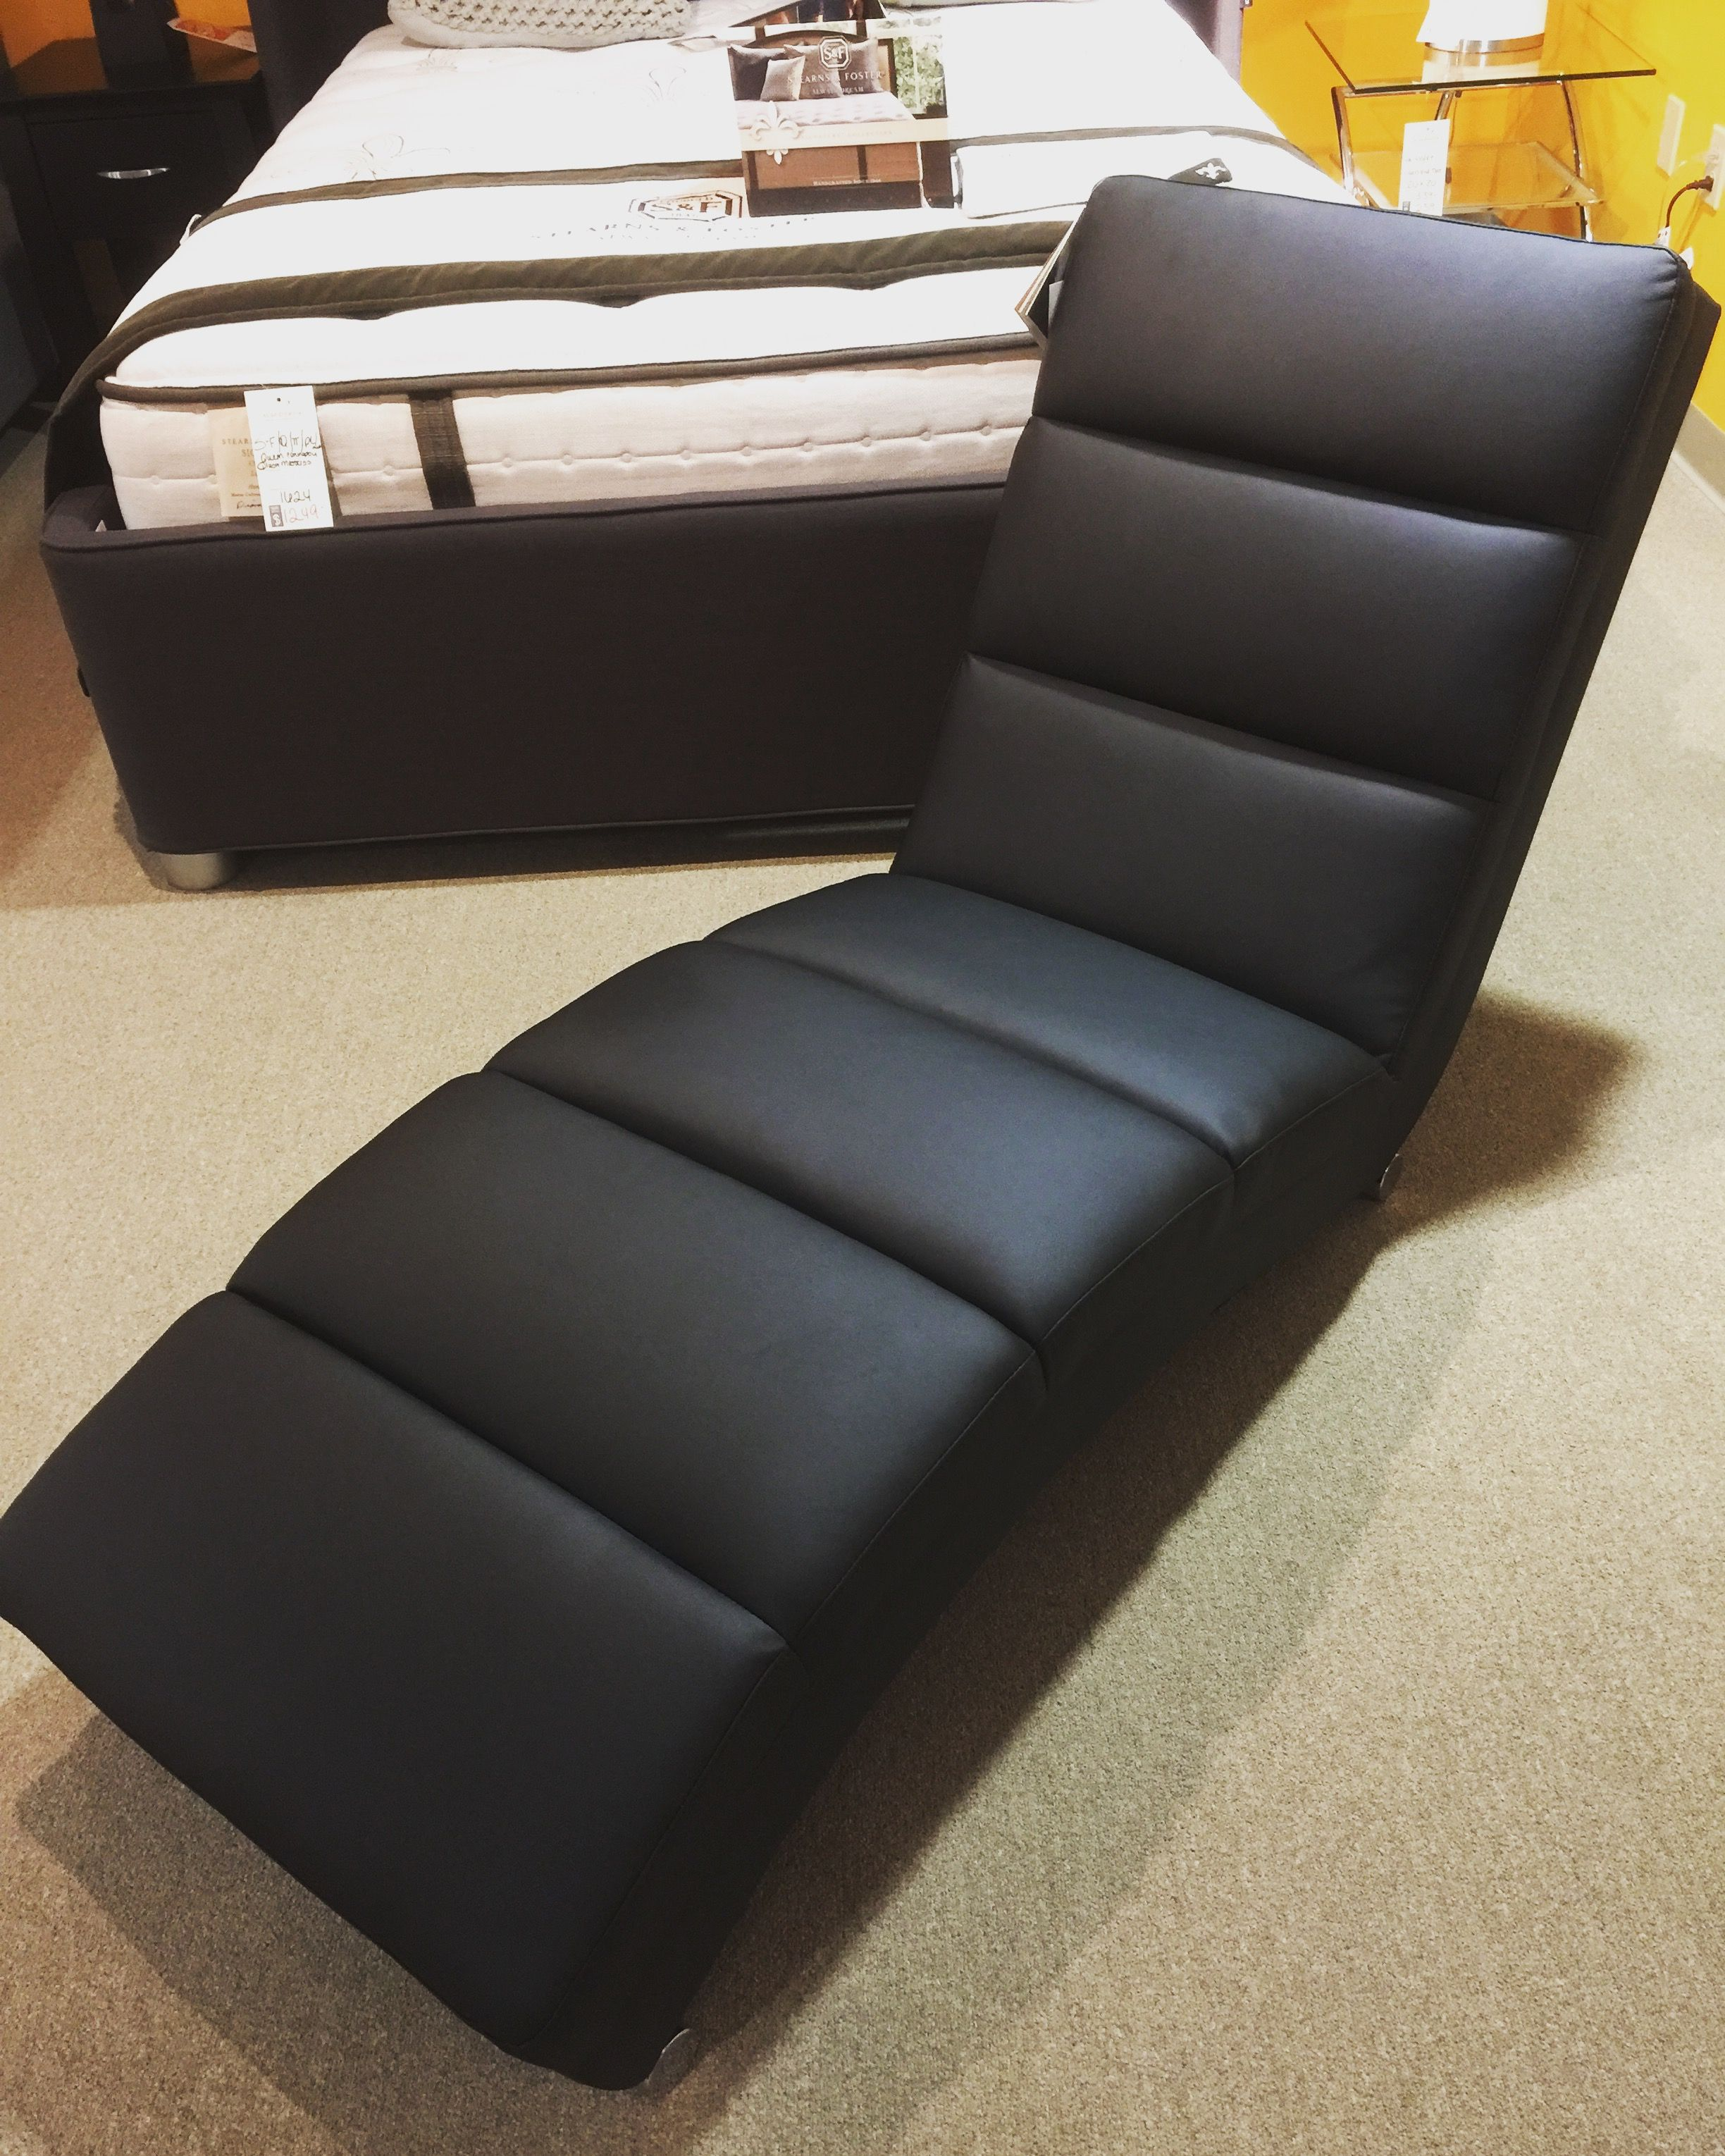 Slinky Chaise Lounge Actona Scandinavia inc New Orleans Louisiana  contemporary modern furniture